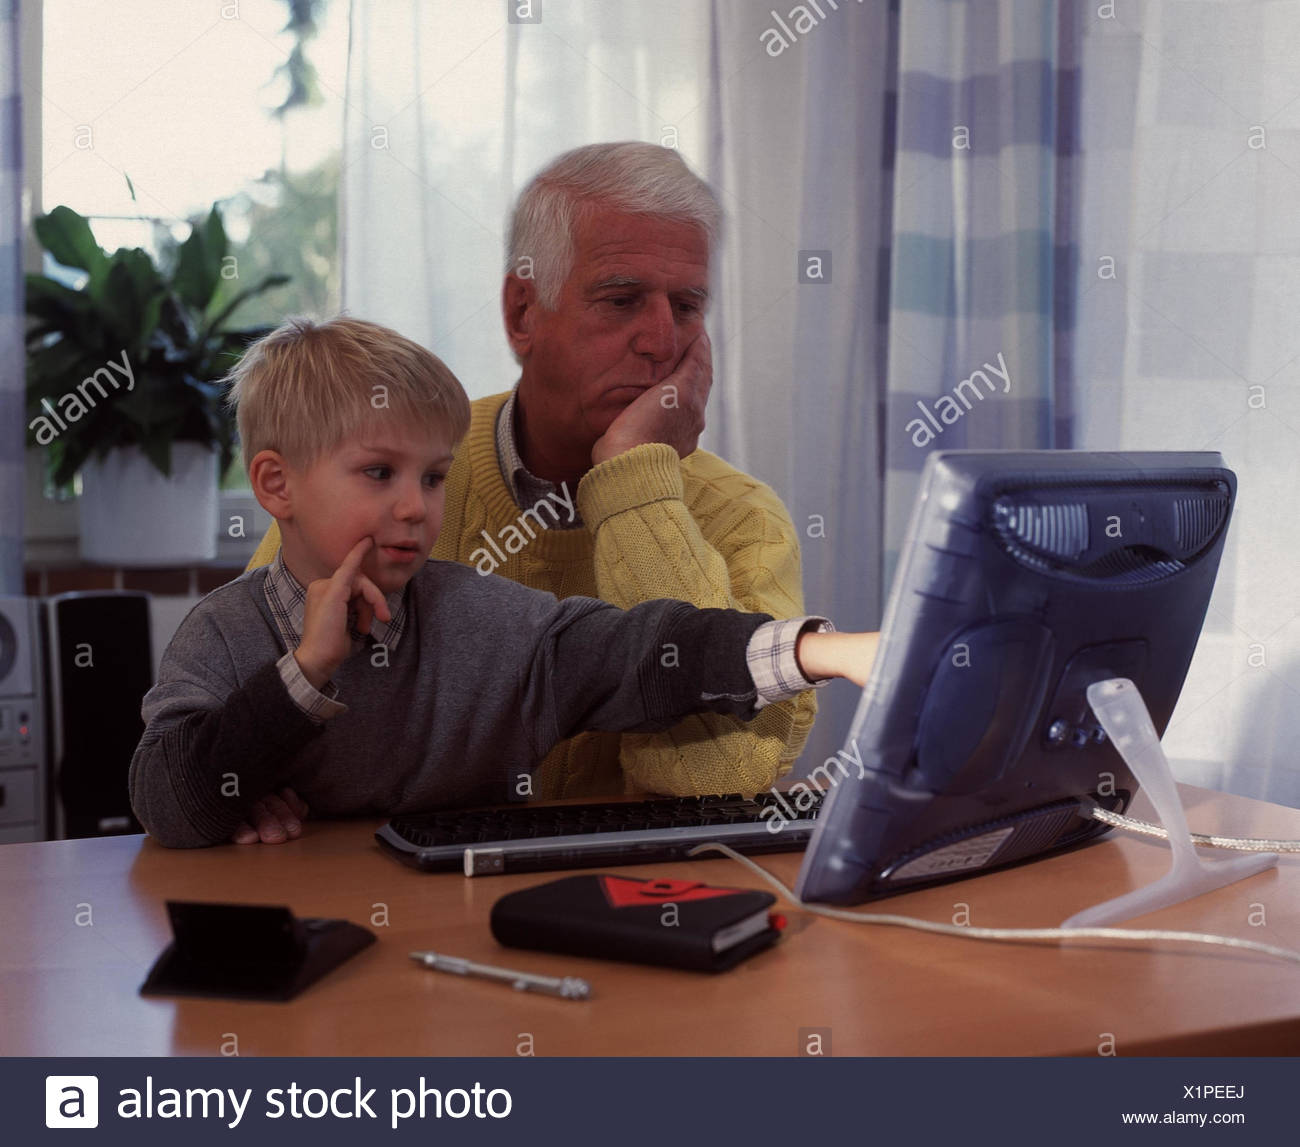 grandfather computer